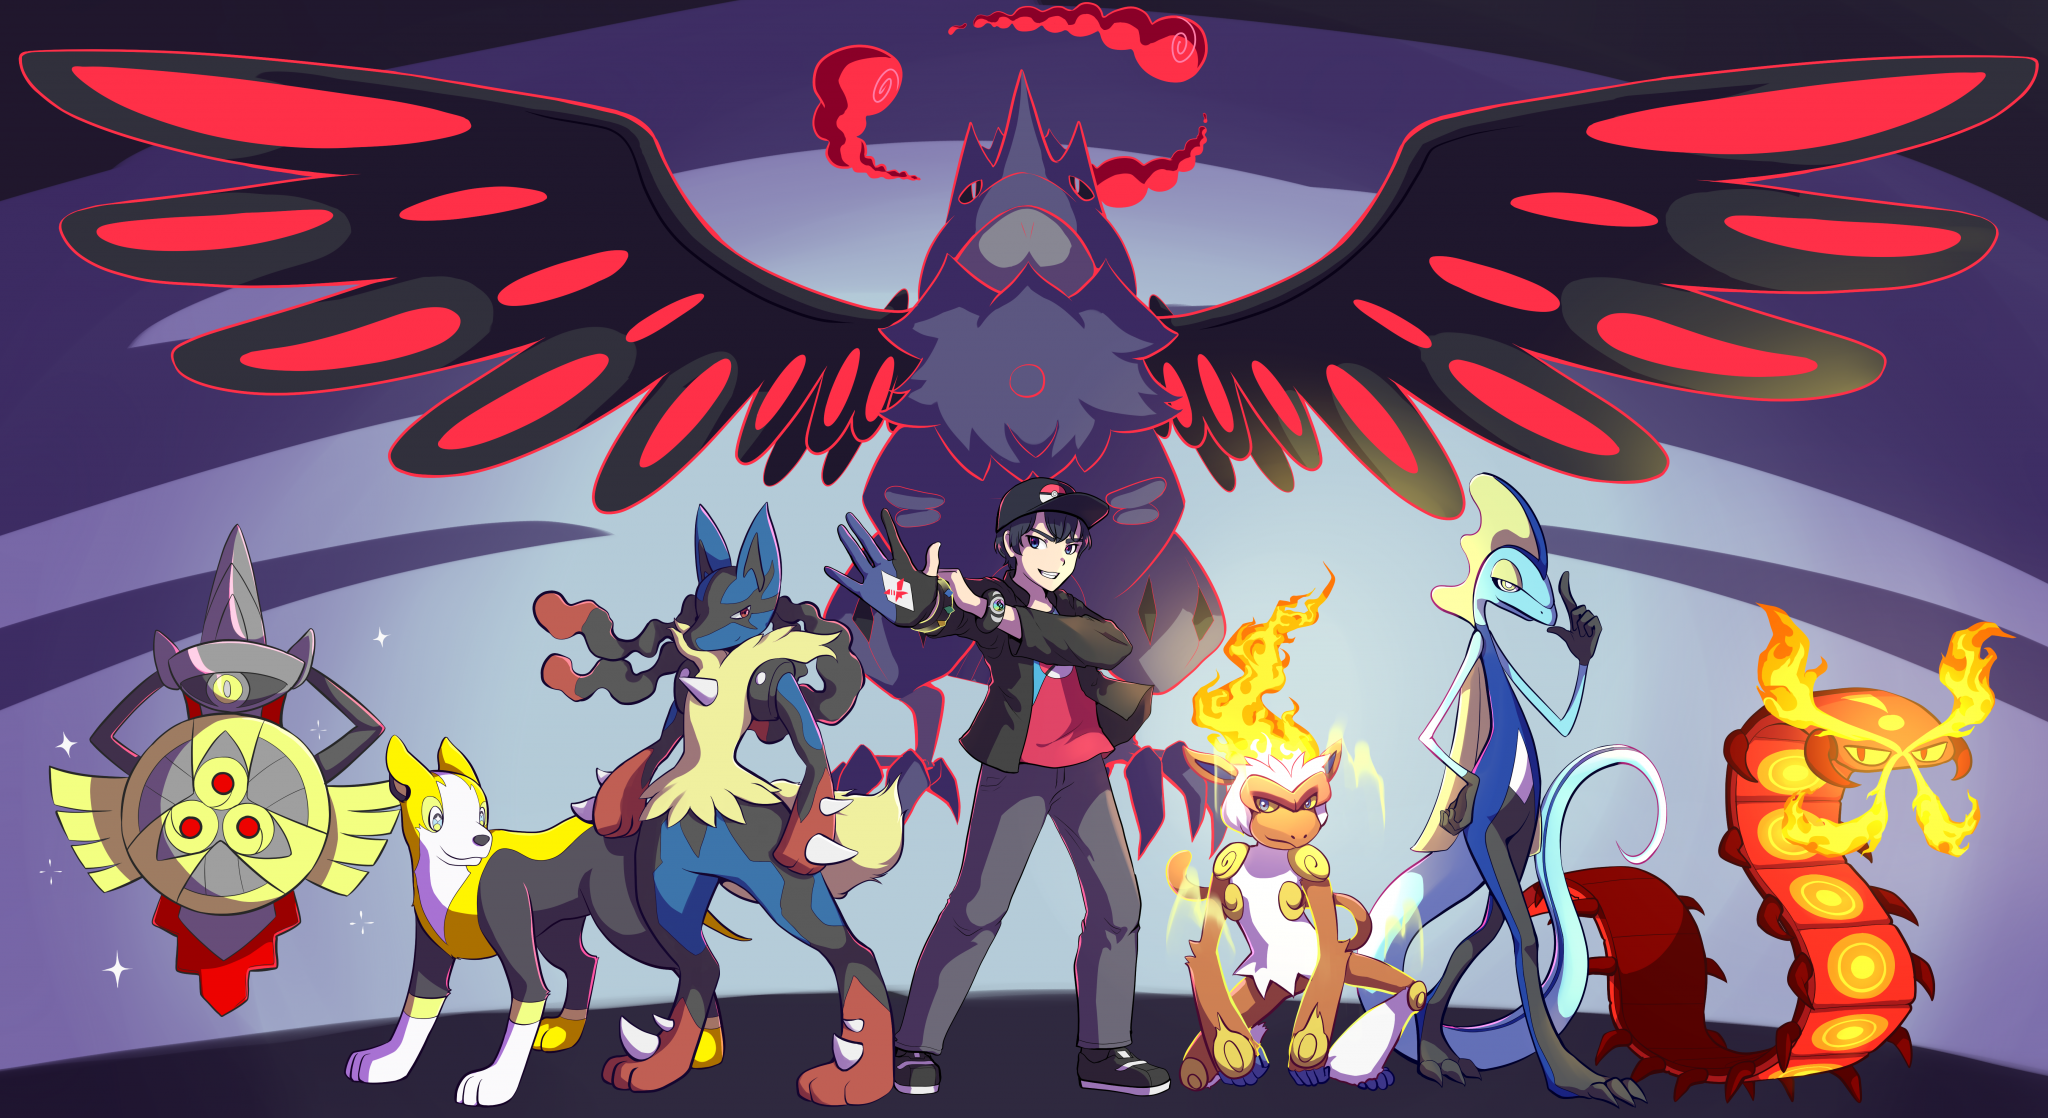 Galar-Team-Artwork by Dreamdust (ReUpload)